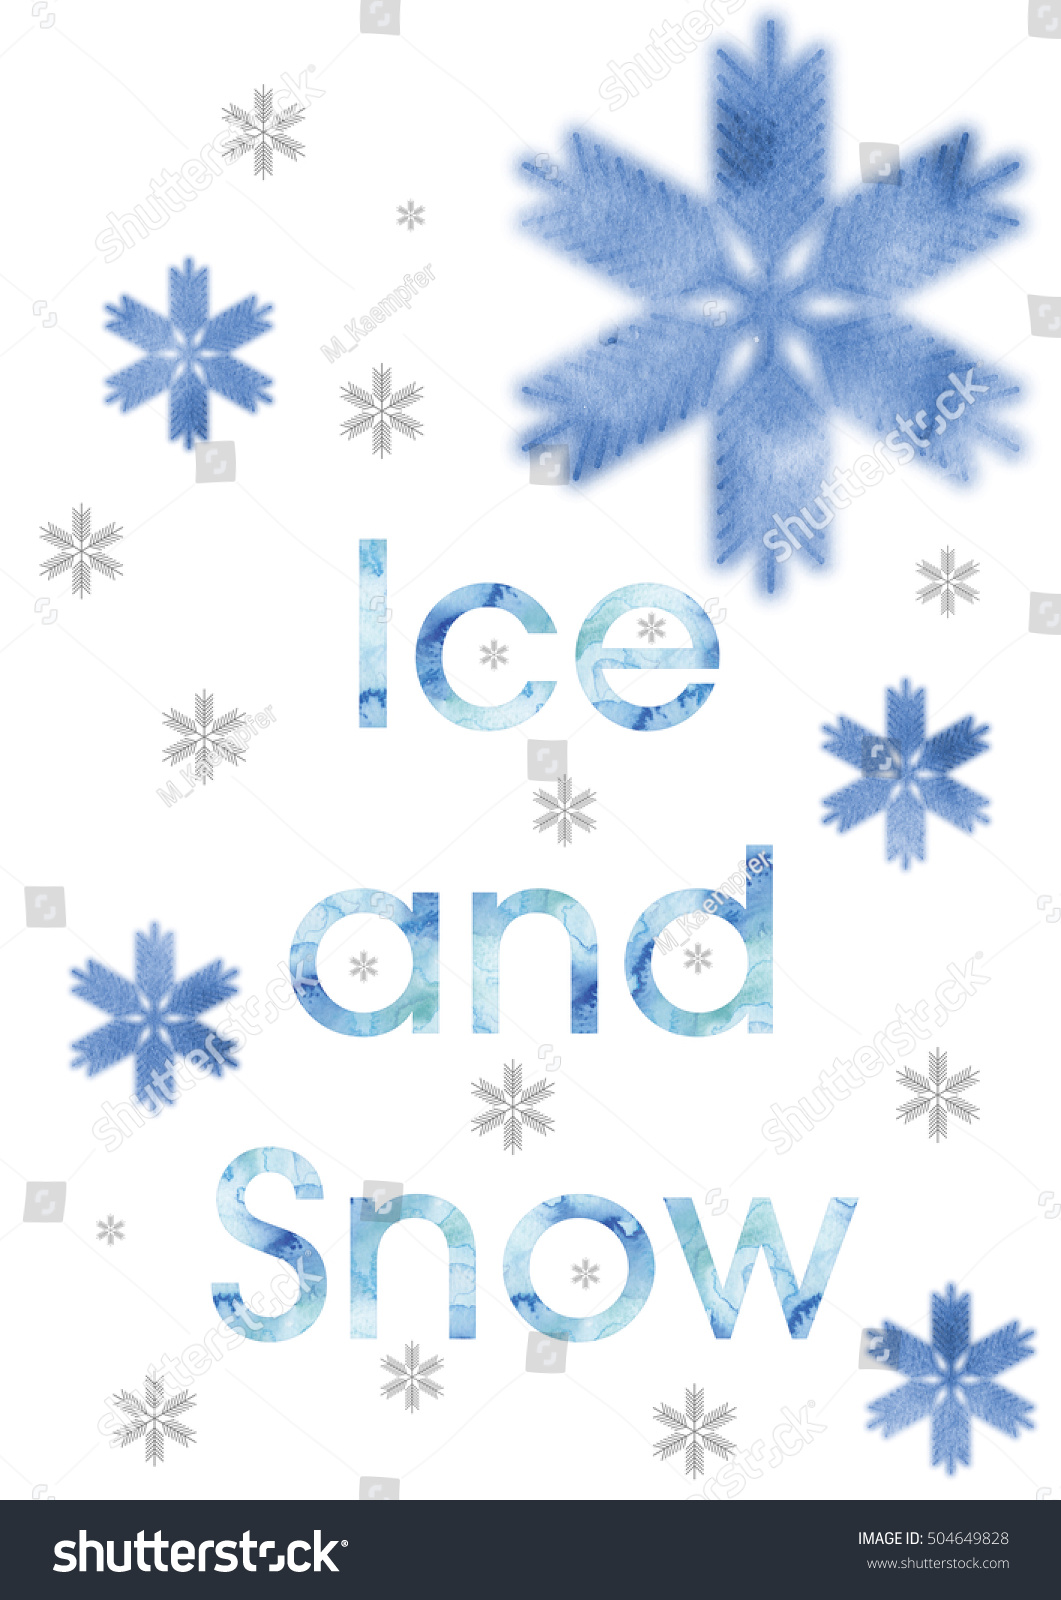 Abstract Snowflakes Front White Background Symbol Stock Illustration